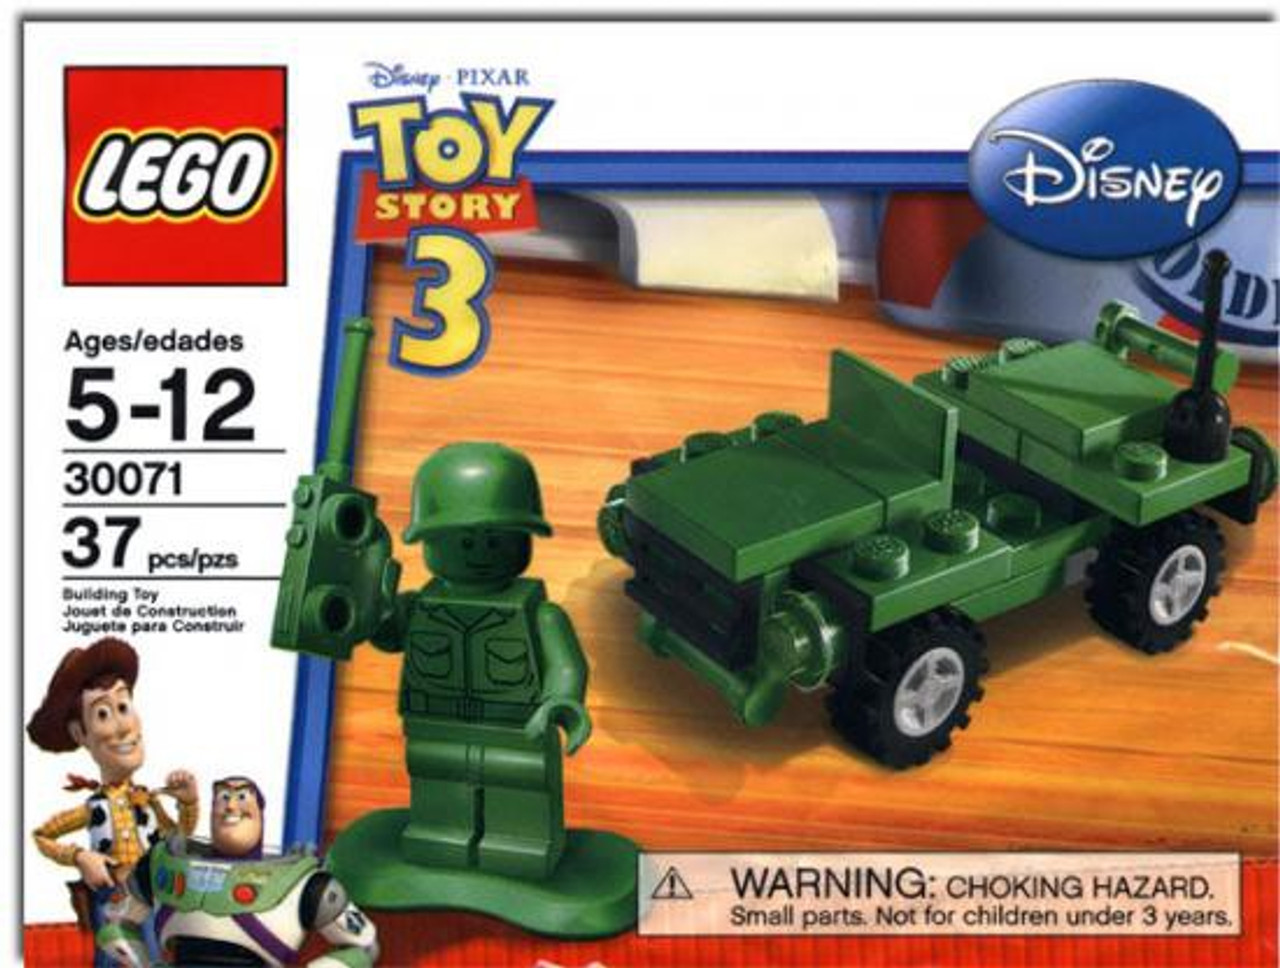 LEGO Toy Story 3 Army Jeep with Soldier Mini Set #30071 [Bagged]